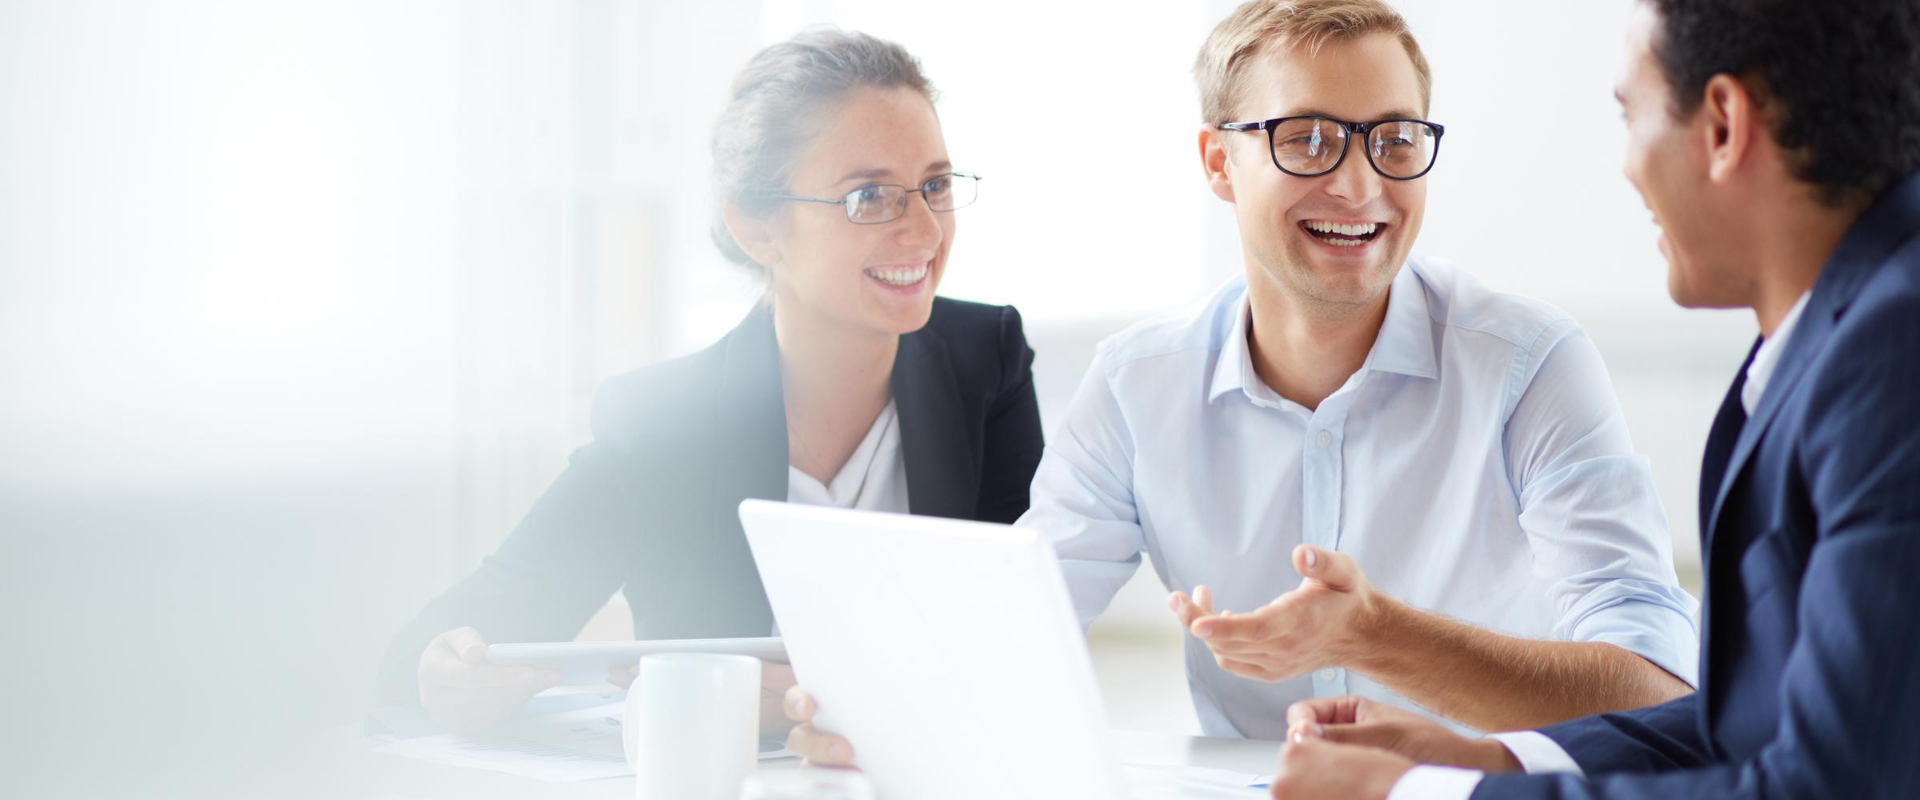 Employees who deliver results through collaboration and fresh ideas.